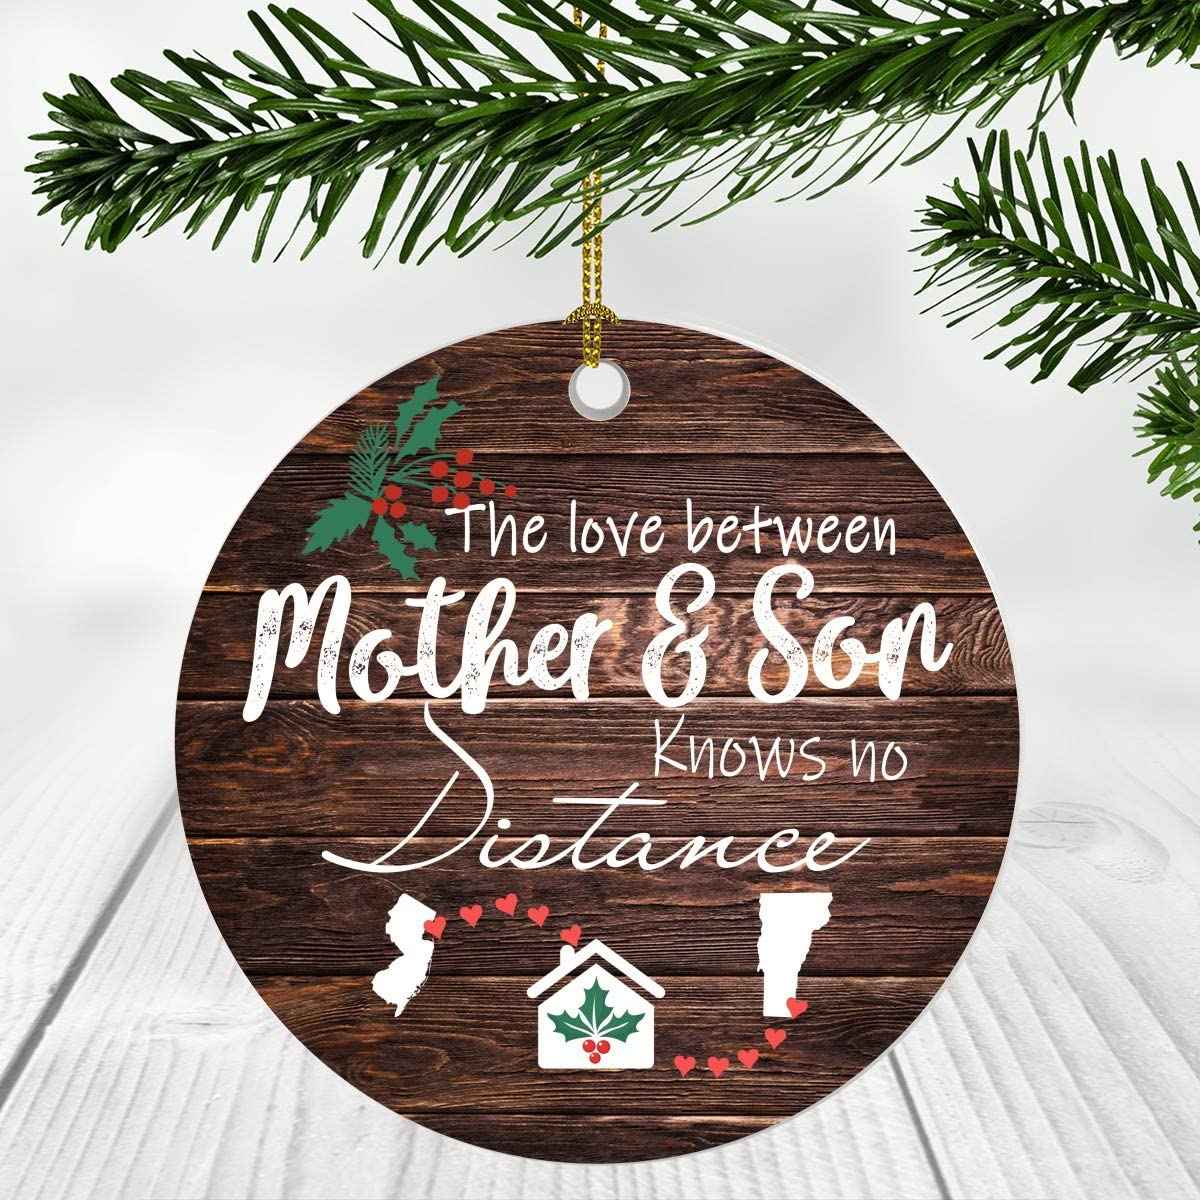 Amazon Com Merry Christmas Ornament Two State Map New Jersey Vermont The Love Between Mother And Son Knows No Distance Christmas Ideas Gift Long Distance Mom And Son Ornament 3 Plastic